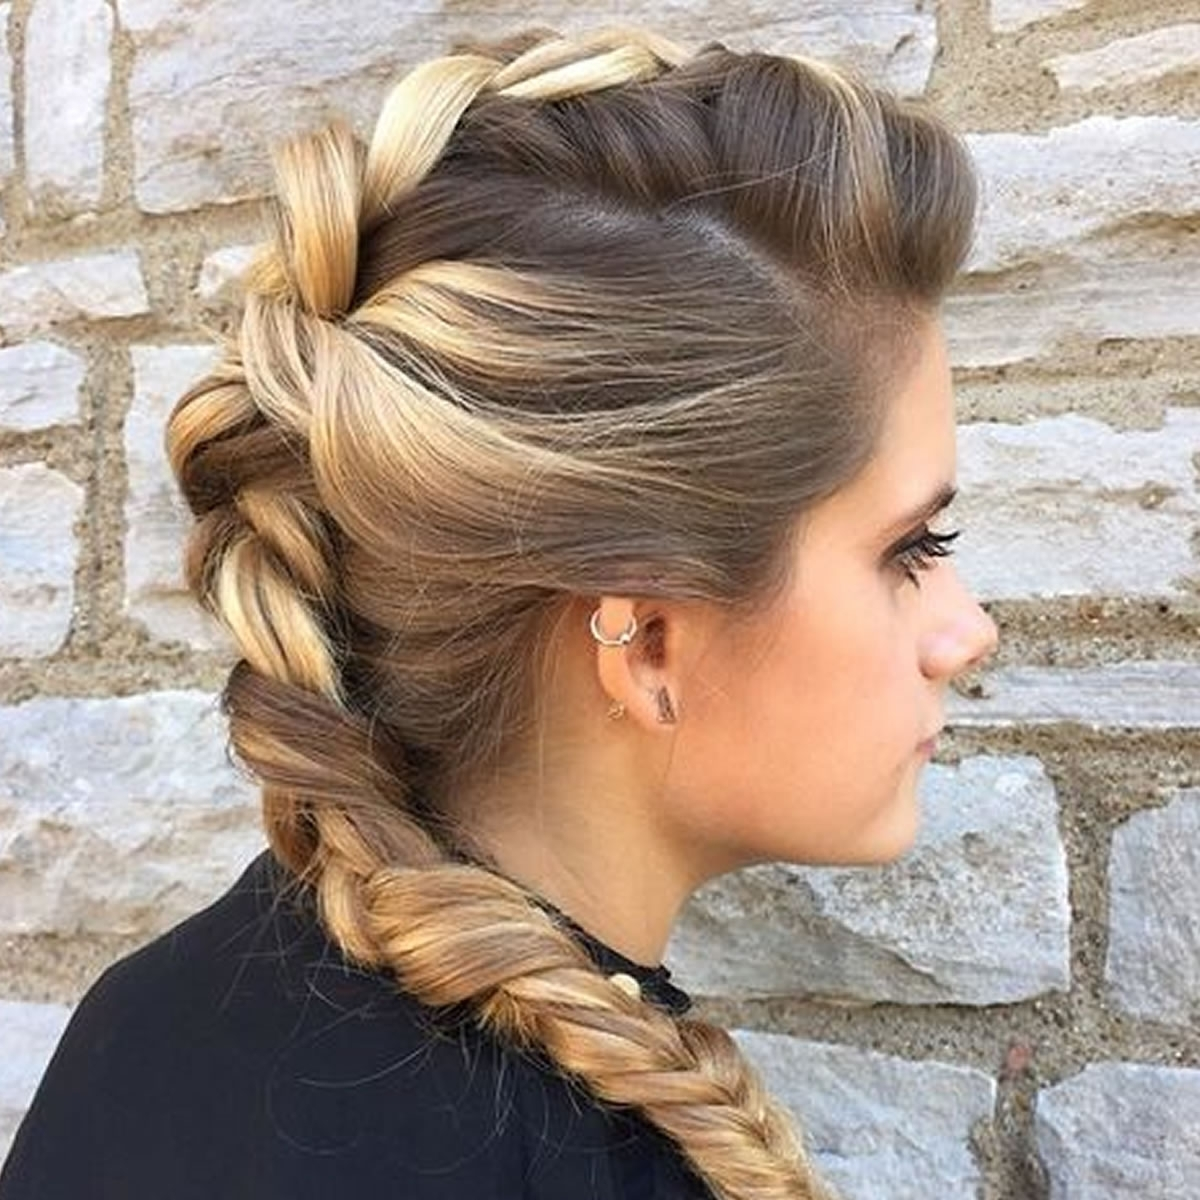 French Braid Mohawk Hairstyle For Long Hair – Hairstyles Within Widely Used Mohawk French Braid Hairstyles (View 6 of 15)